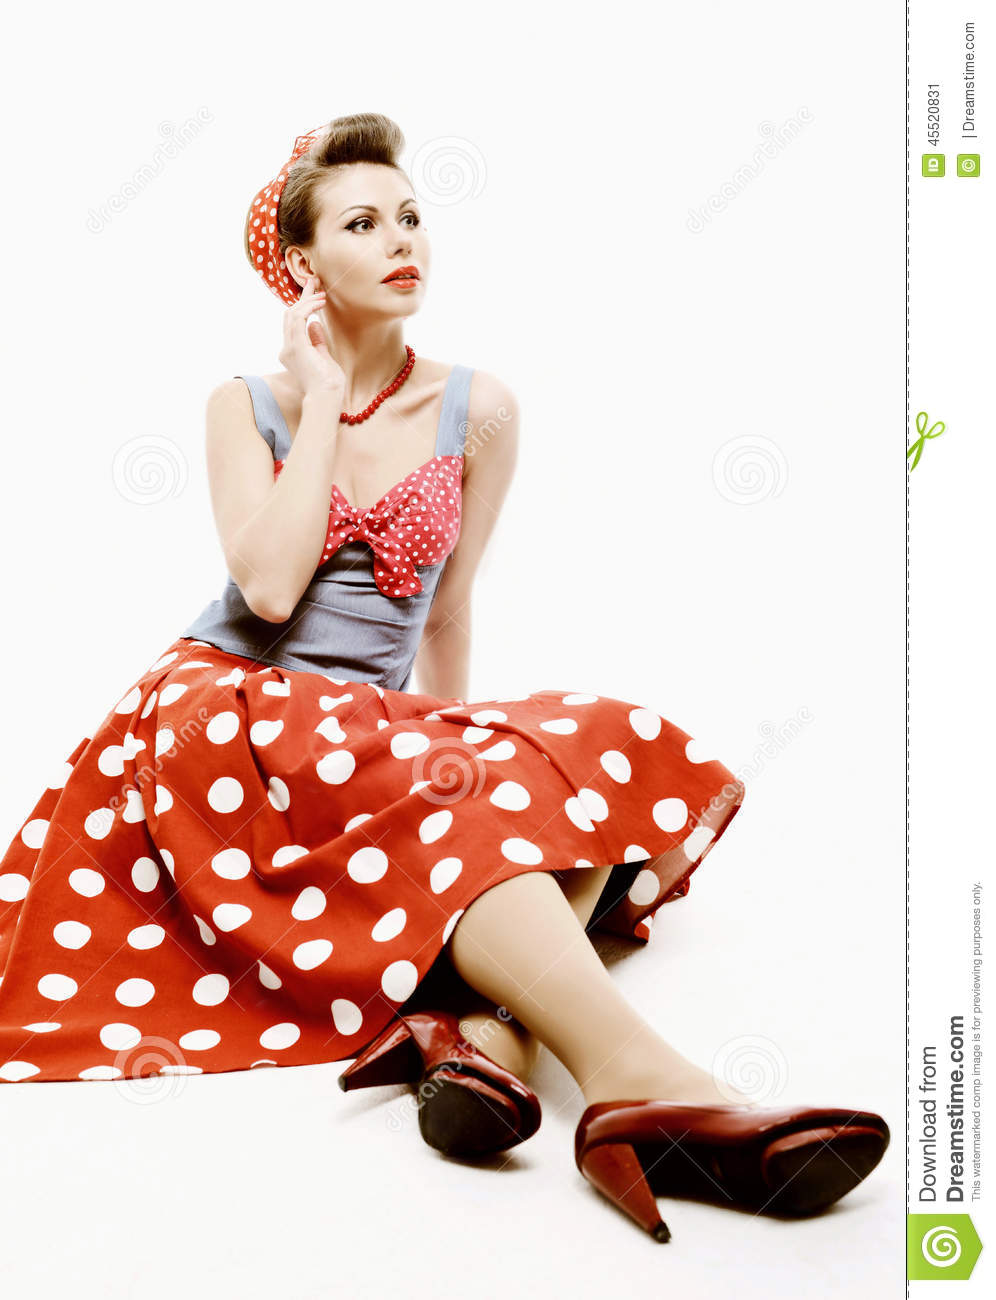 pin up young woman in vintage american style stock image image of clothes professional 45520831. Black Bedroom Furniture Sets. Home Design Ideas